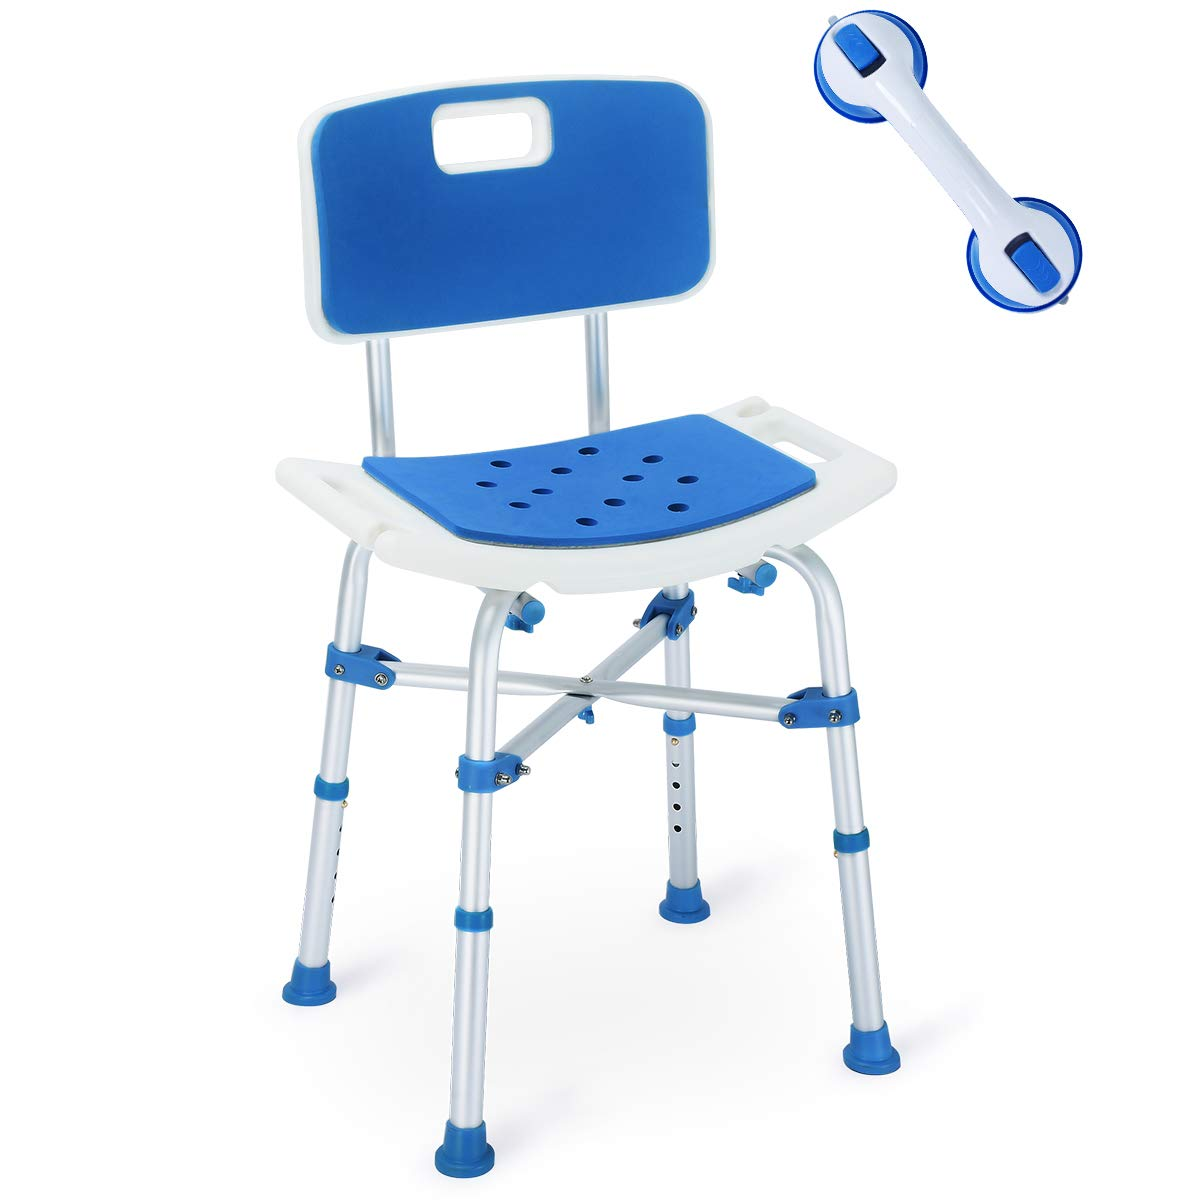 2019 Version! Upgraded Shower Chair, Bariatric Heavy Duty Bath Chair 500 lbs Cap. Transfer Bench w/EVA Paded Seat and Assist Grab Bar (White/Blue) 51czyJjZvcL